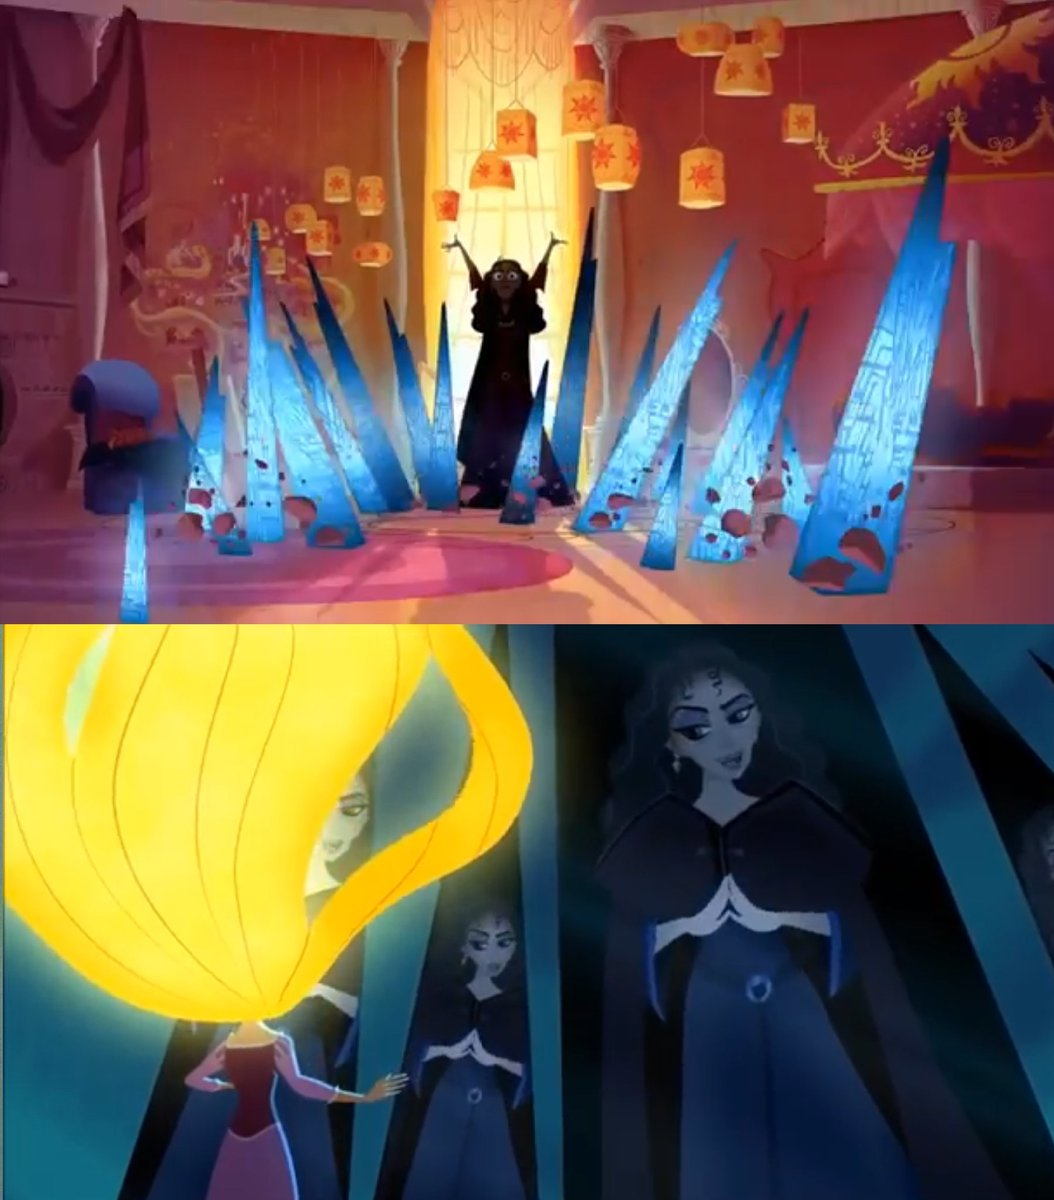 Rapunzel S Tangled Adventure On Twitter Zhan Tiri Is The Evil Sorcerer Or Sorceress Who Fought Lord Demanitus And Attached Corona Here Is A Helpful Link For You Https T Co 5fi4qgtdmq Https T Co F52uwht7ct